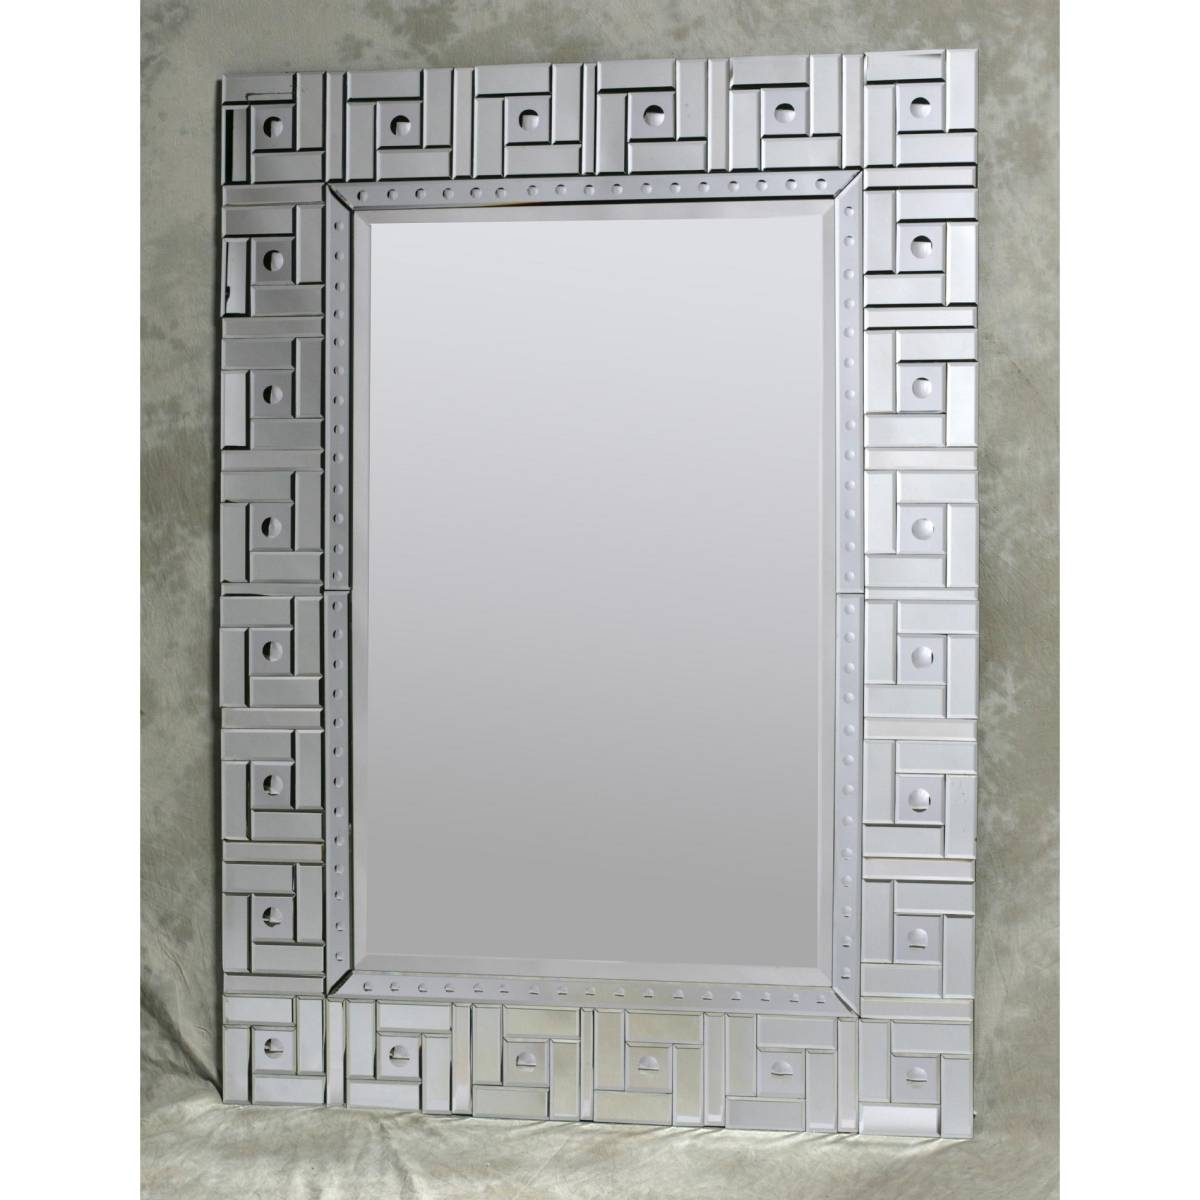 Large Clear Square Detail Venetian Mirror - Nicholas John Interiors with Square Venetian Mirrors (Image 16 of 25)